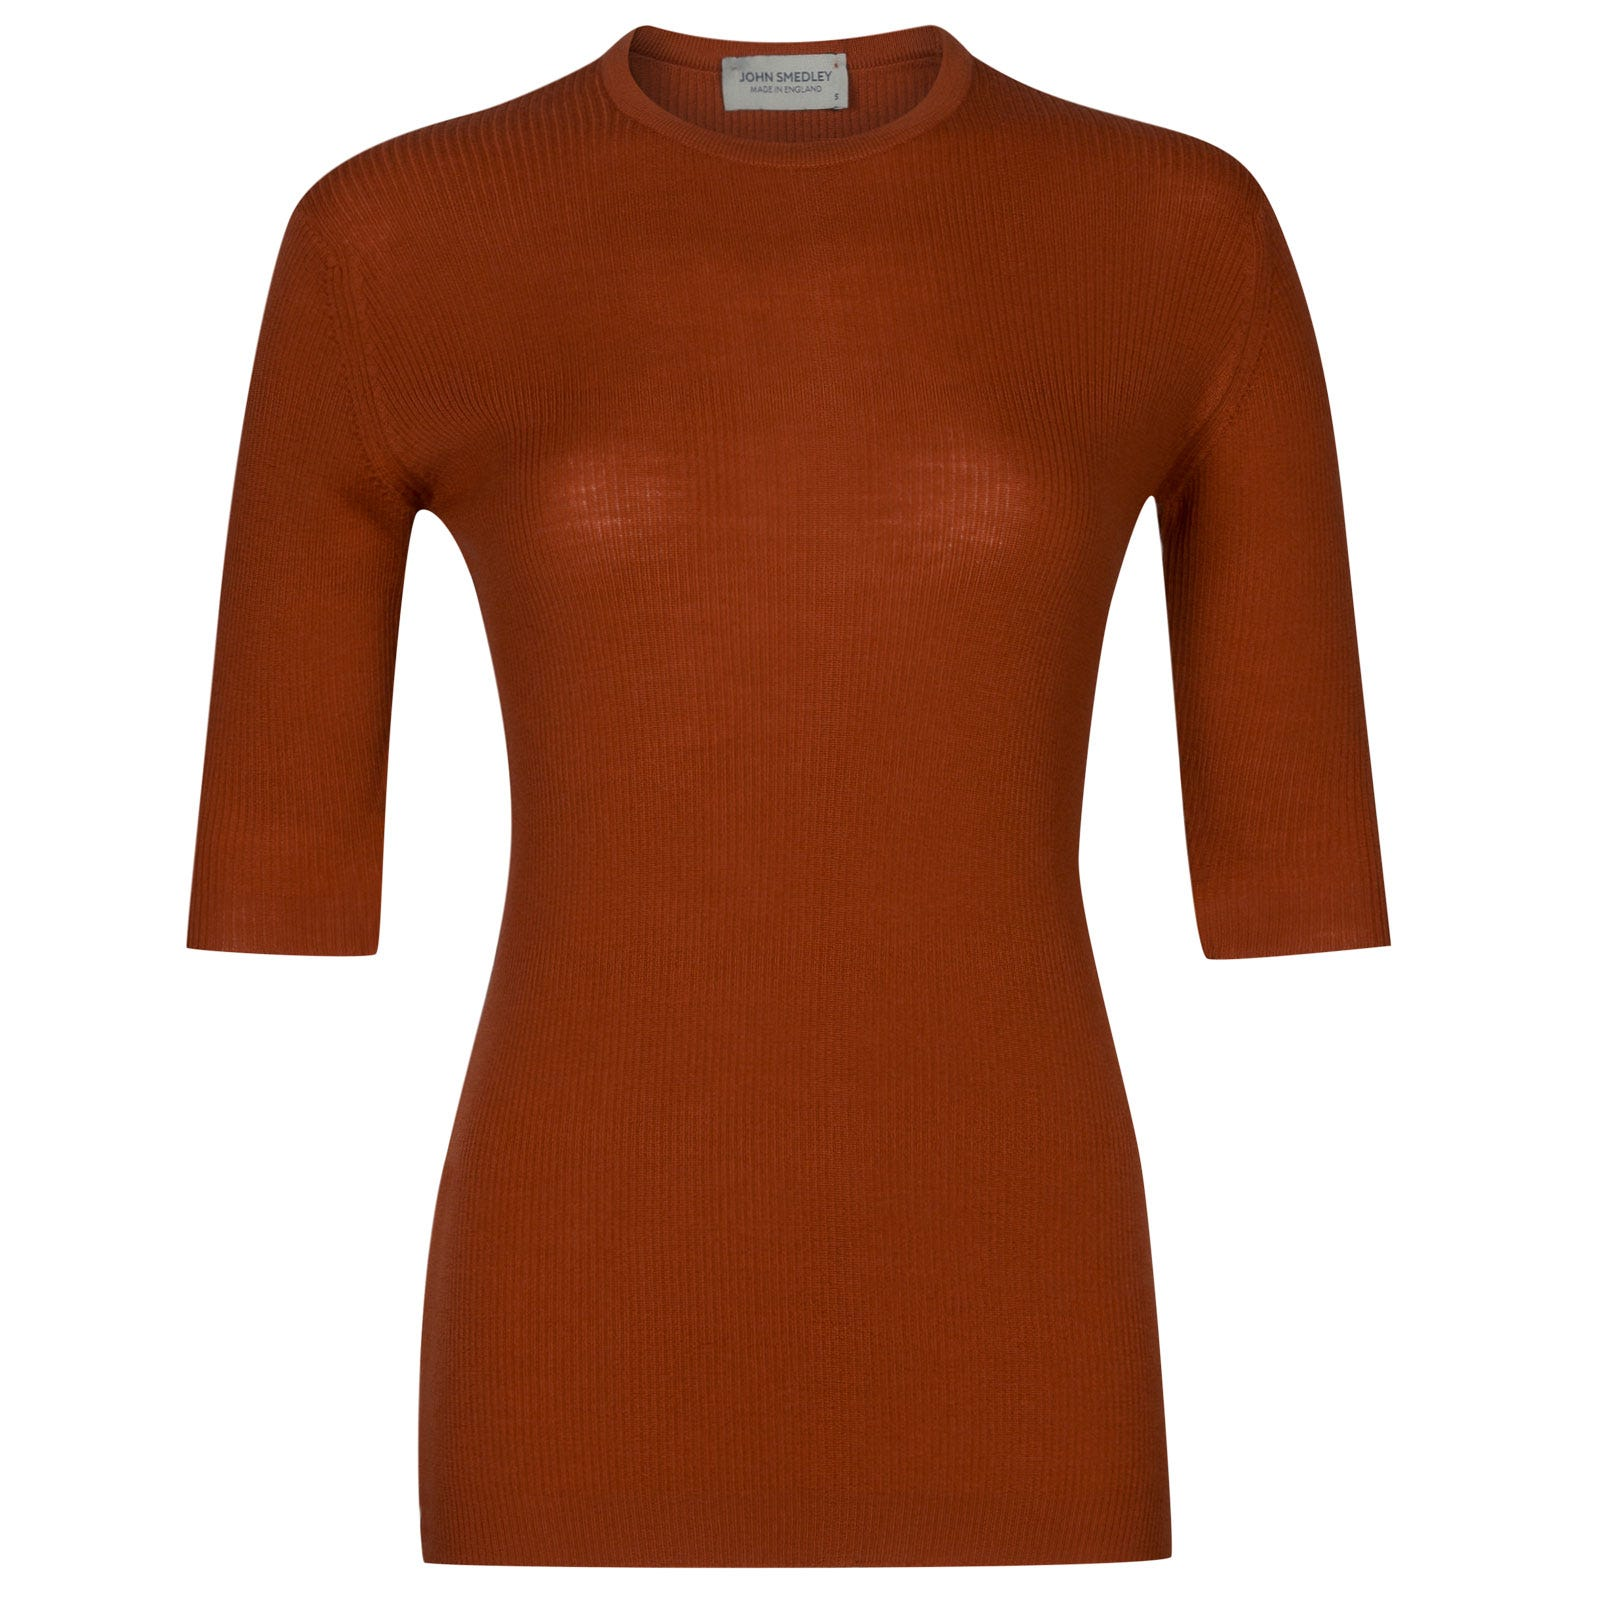 John Smedley wilis Merino Wool Sweater in Flare Orange-S